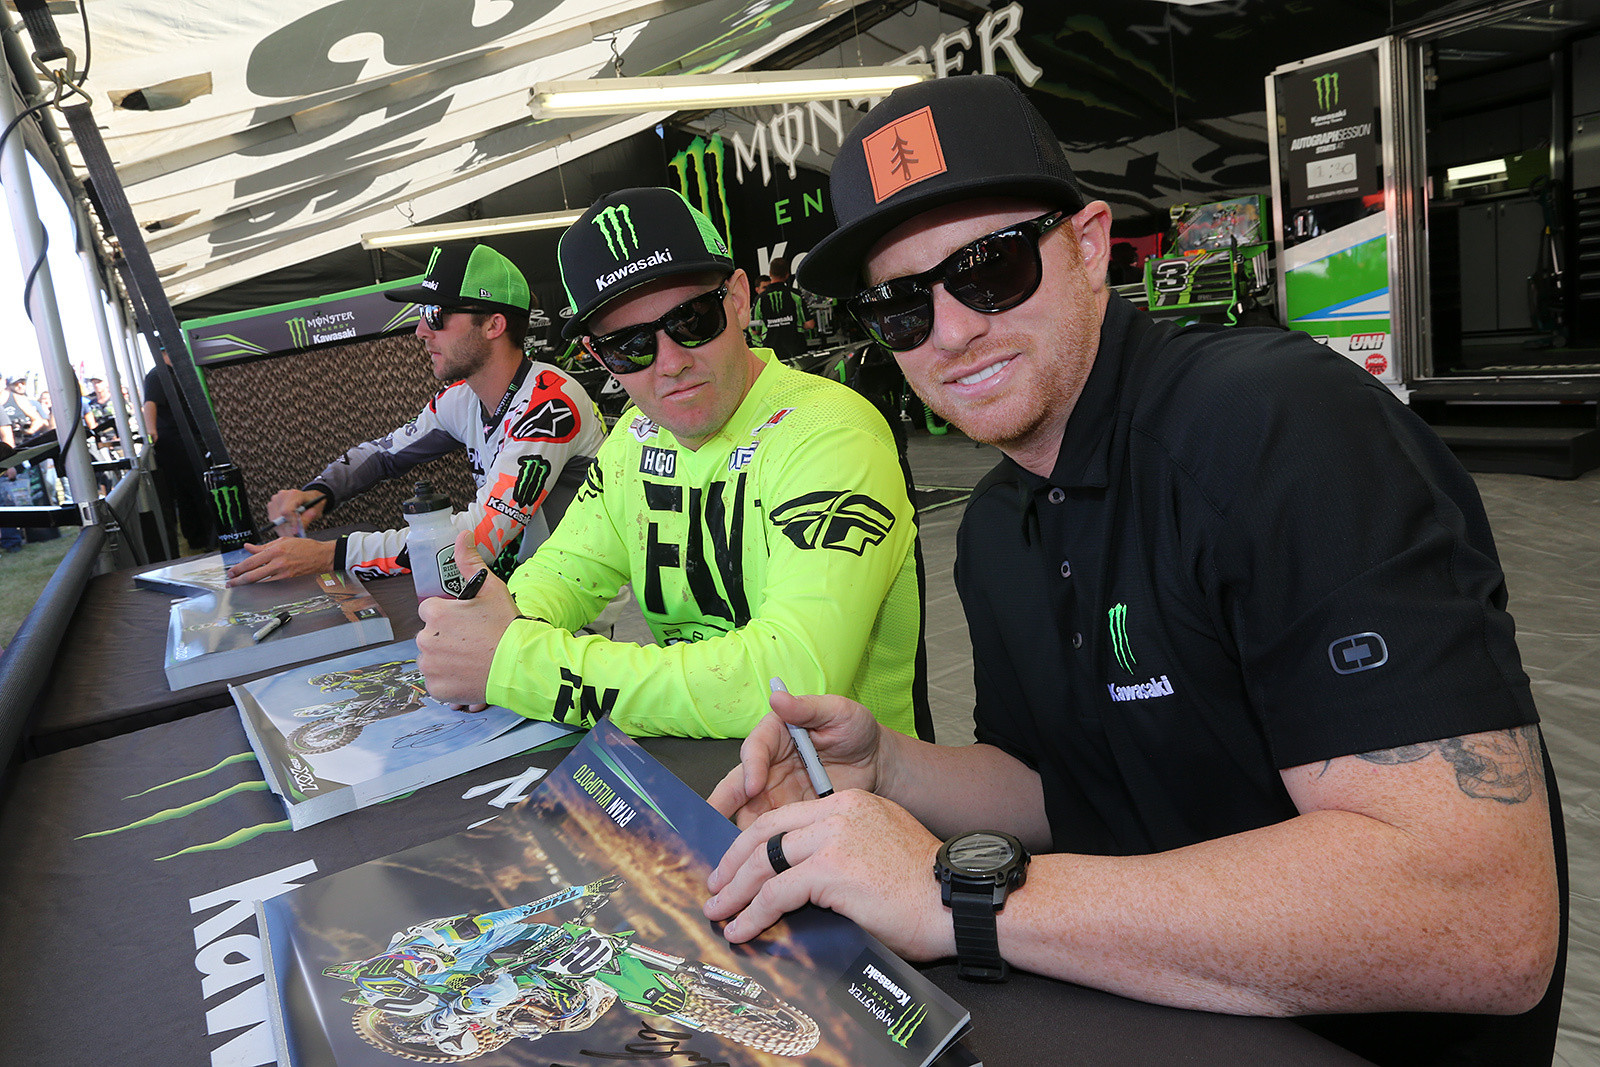 Eli Tomac, Josh Grant, and Ryan Villopoto getting arm pump signing autographs in the afternoon.